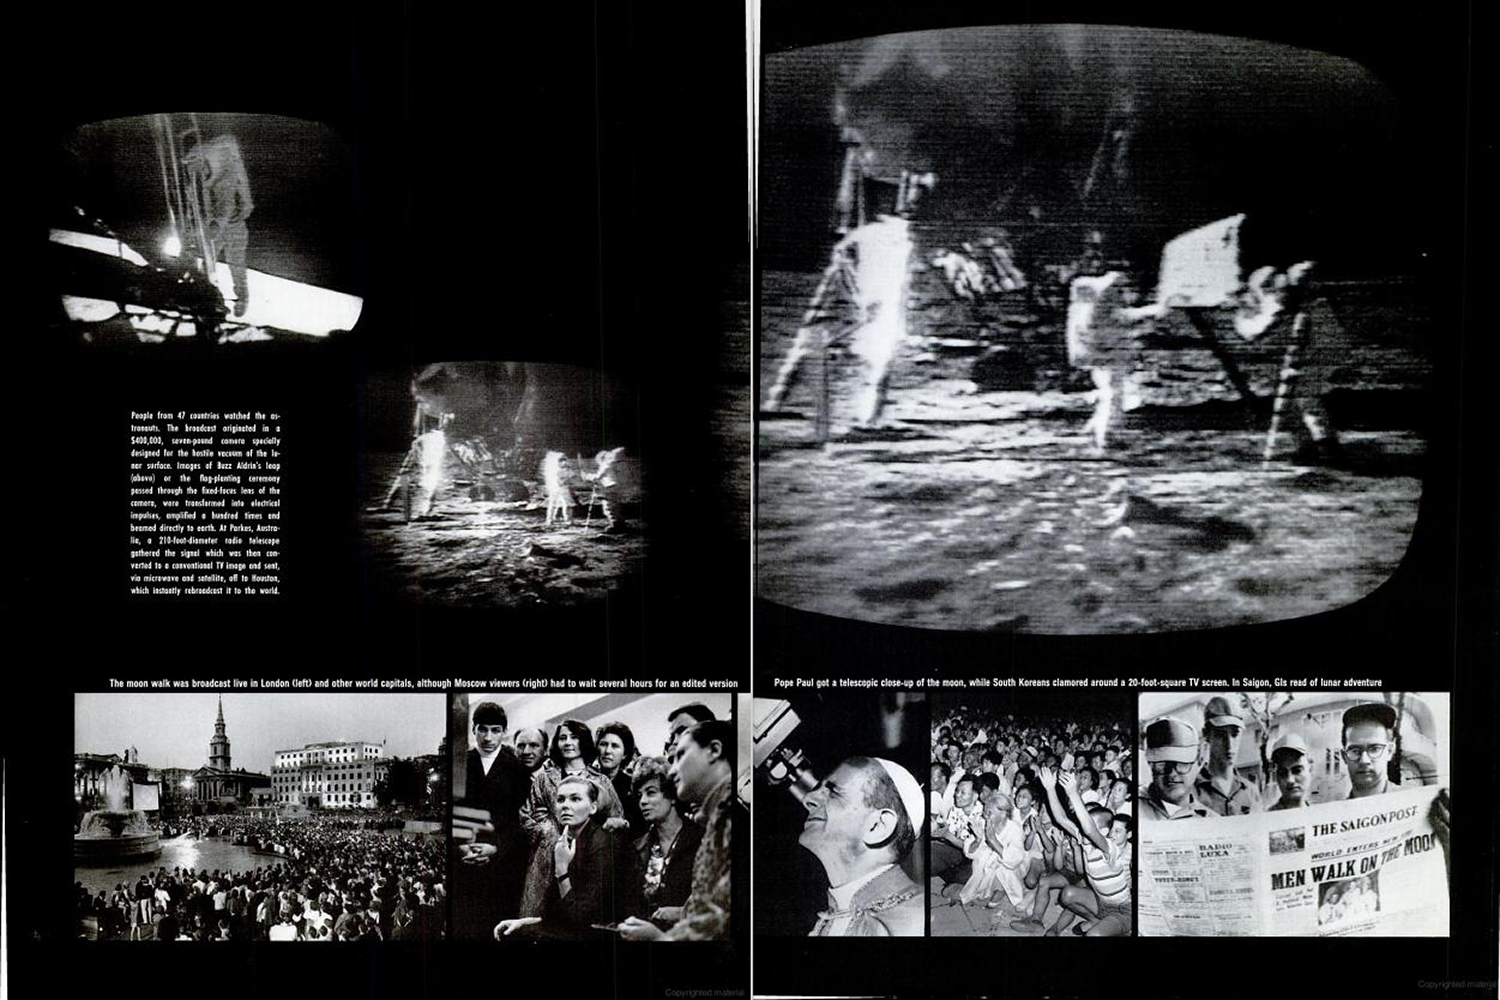 "<b>Life magazine Special Edition, August 11, 1969.</b> ""The moonwalk was broadcast live in London (left) and other world capitals, although Moscow viewers (right) had to wait several hours for an edited version. Pope Paul got a telescopic close-up of the moon, while South Koreans clamored around a 20-foot-square TV screen. GIs read of lunar adventure ..."""